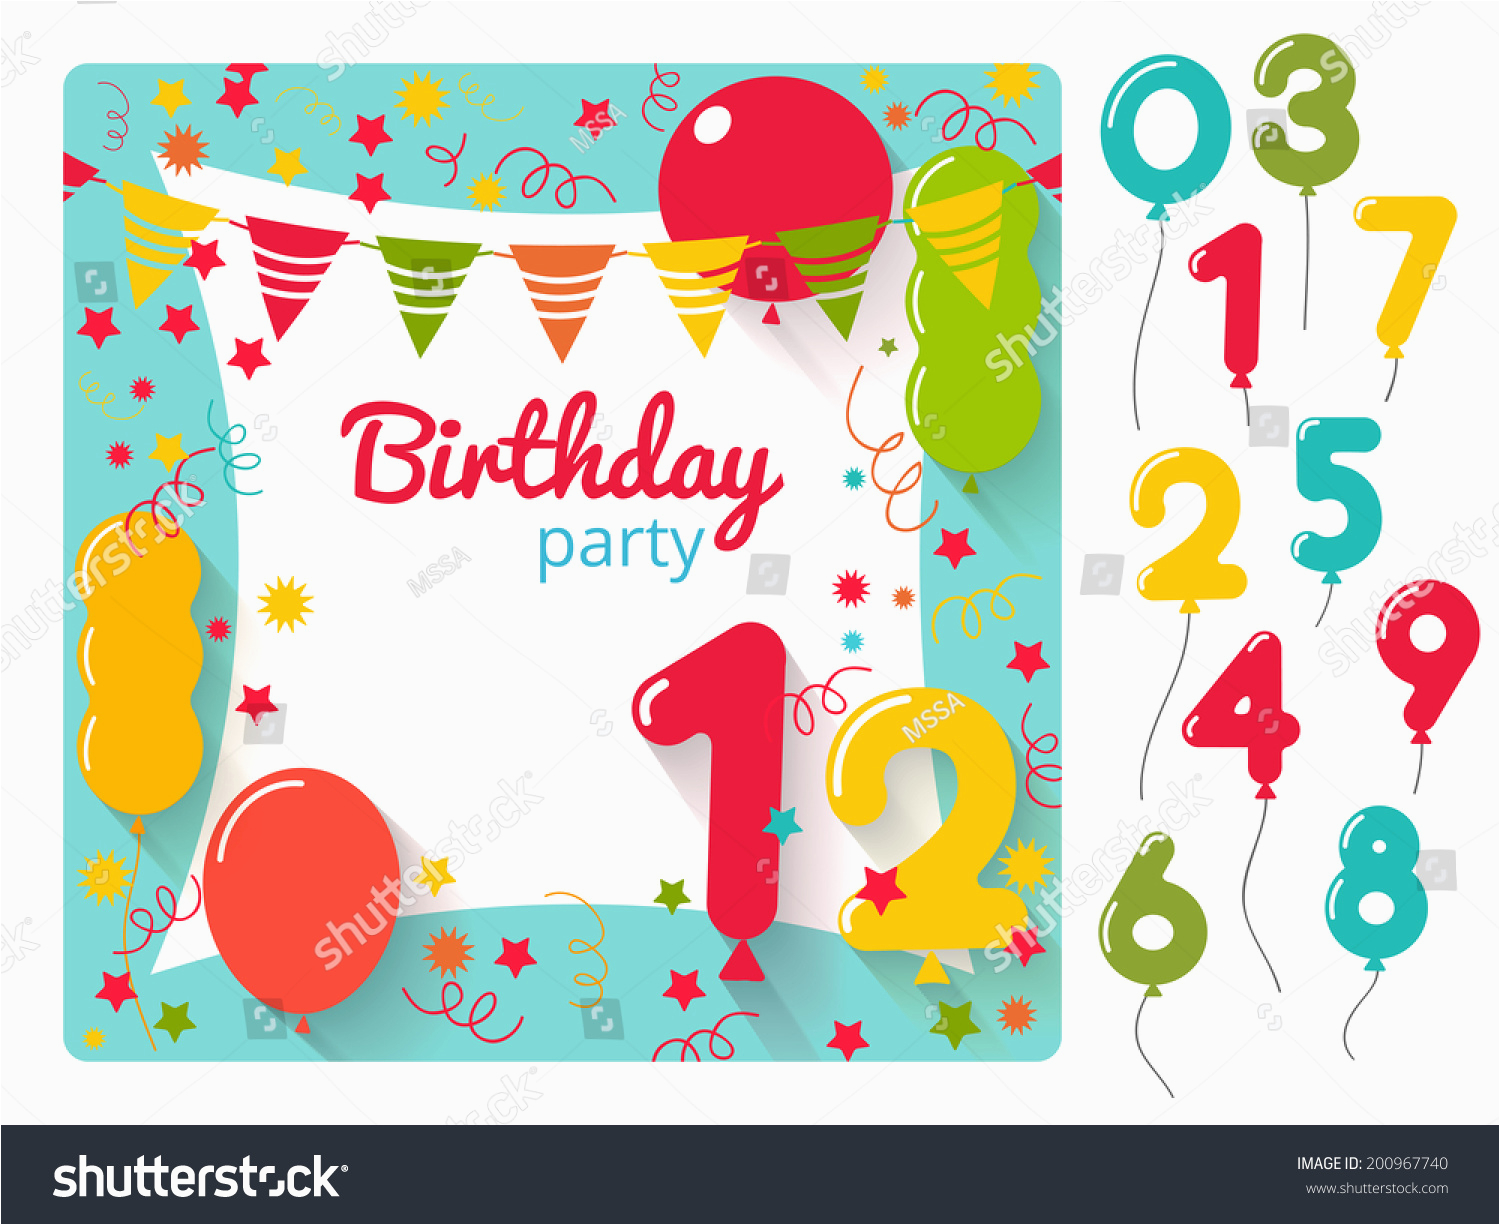 vector birthday party invitation card design 200967740